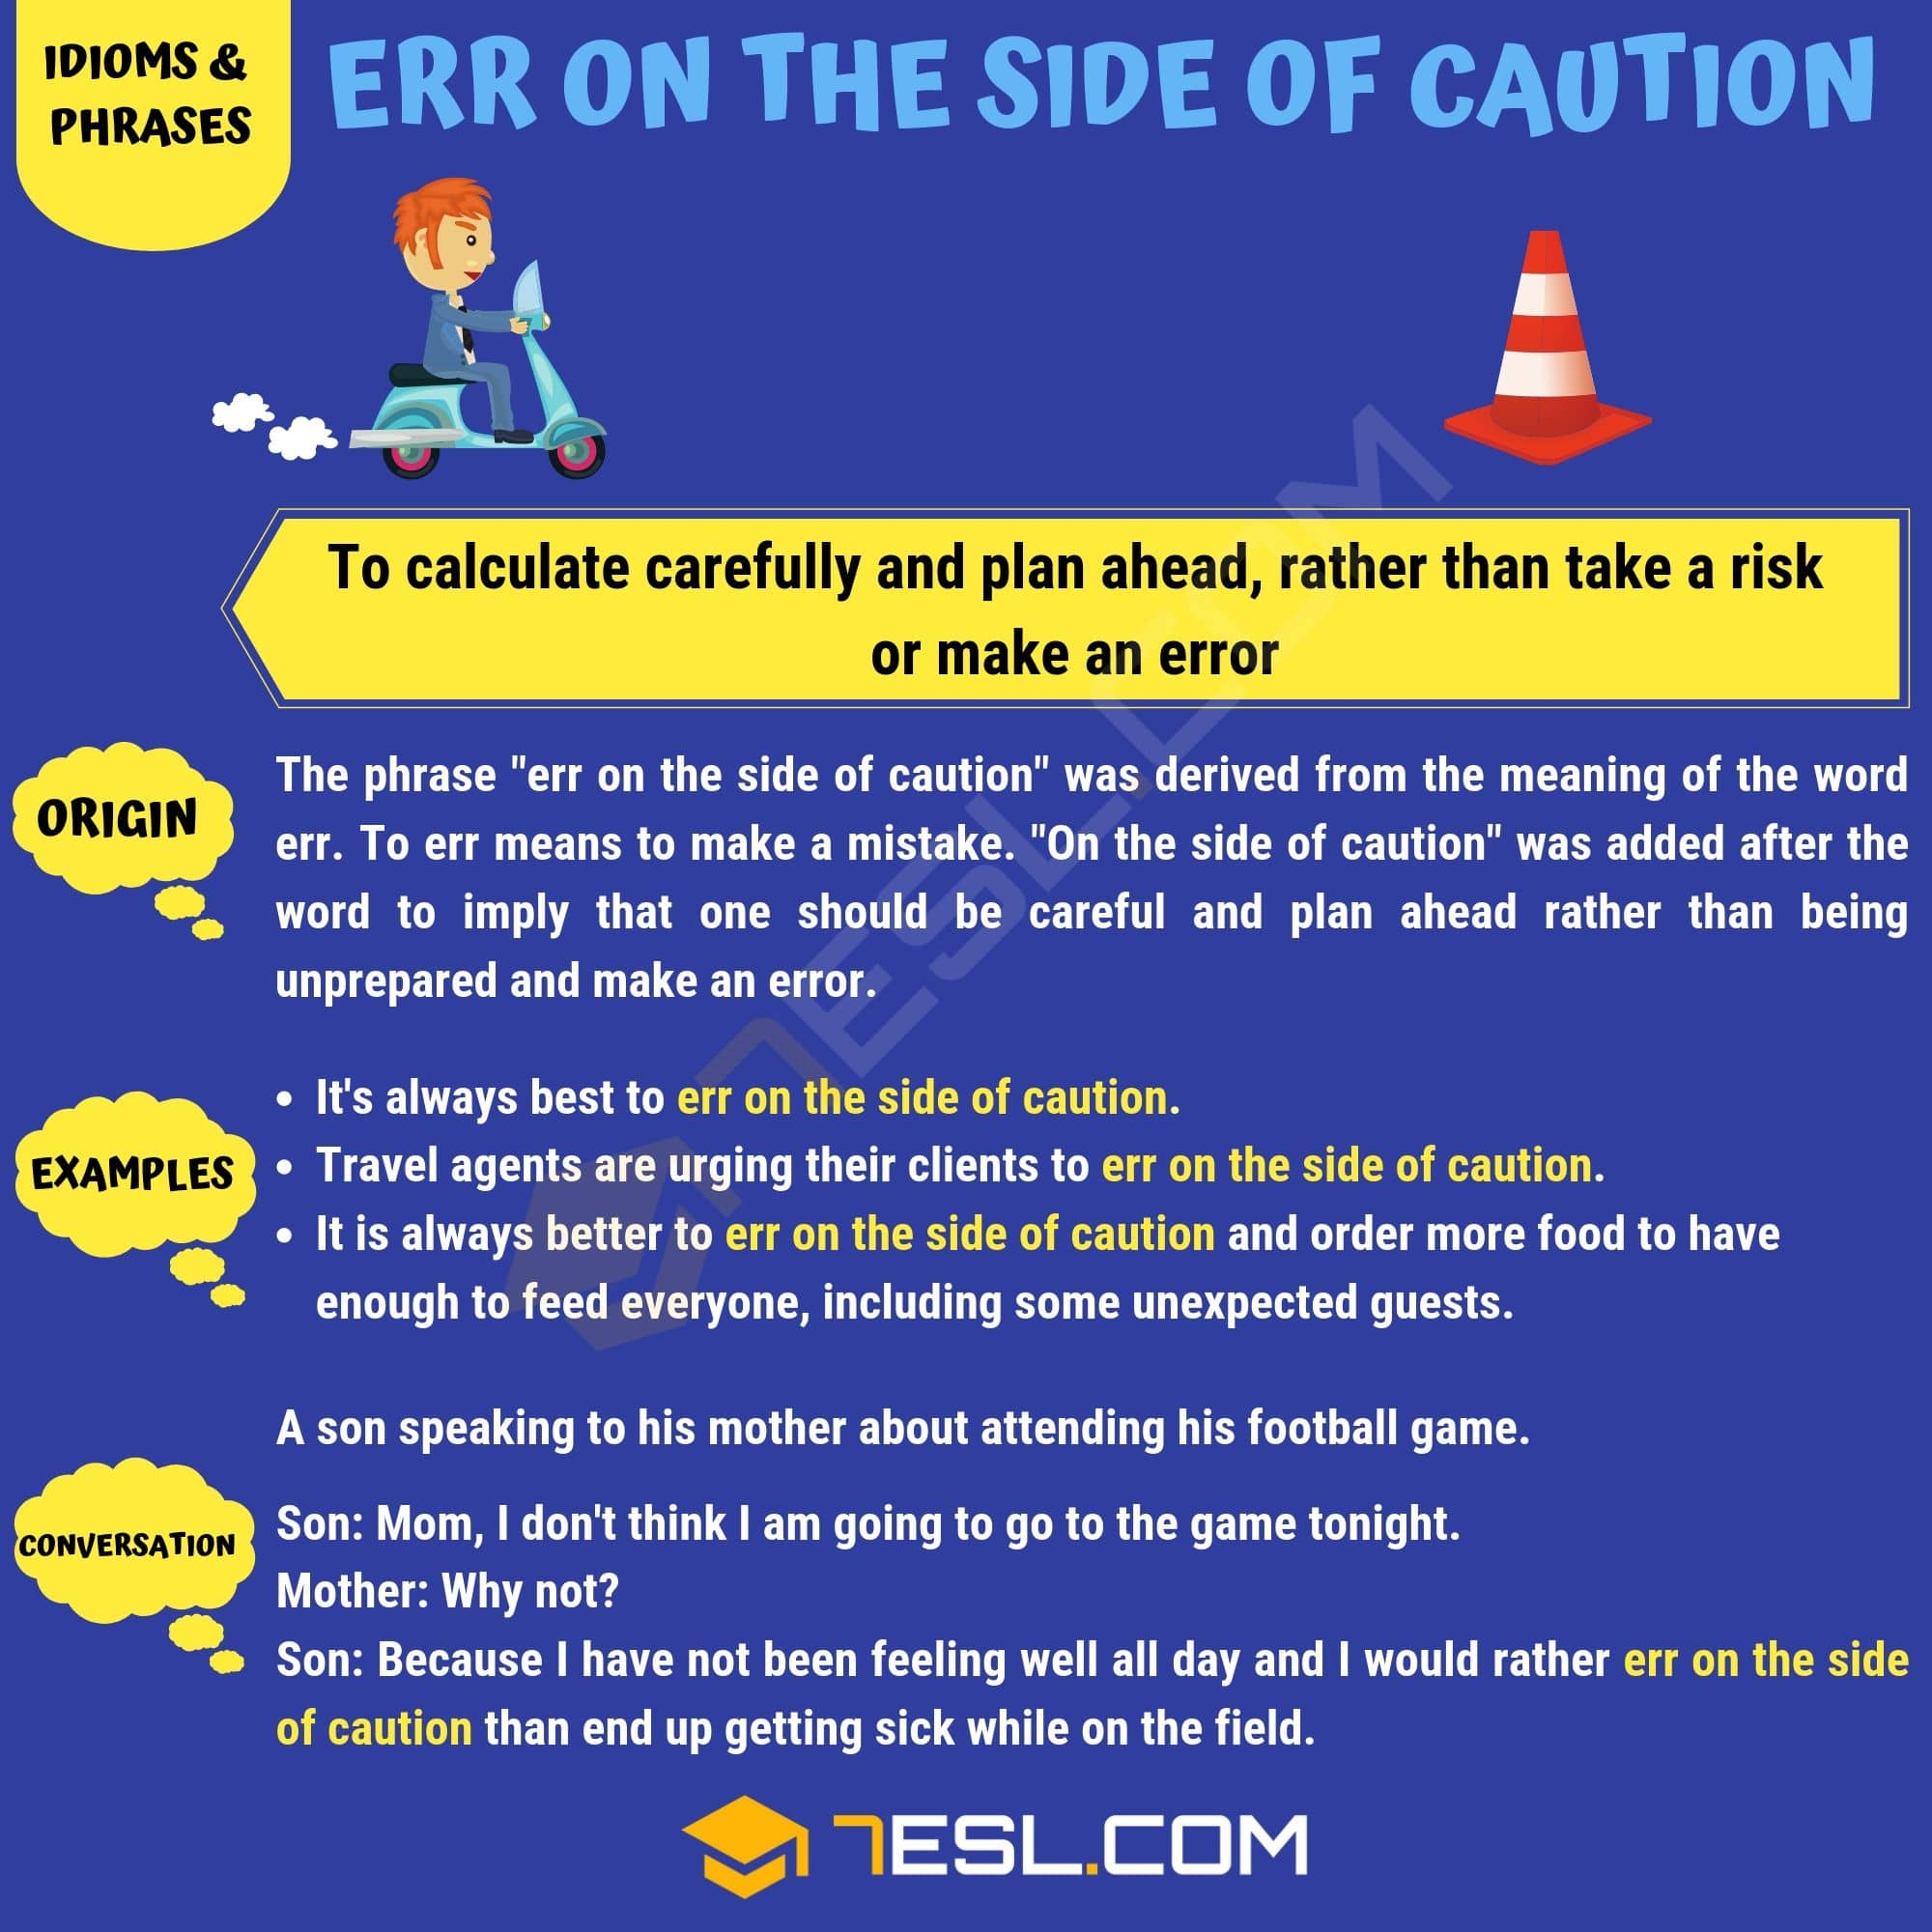 Err on the Side of Caution Meaning